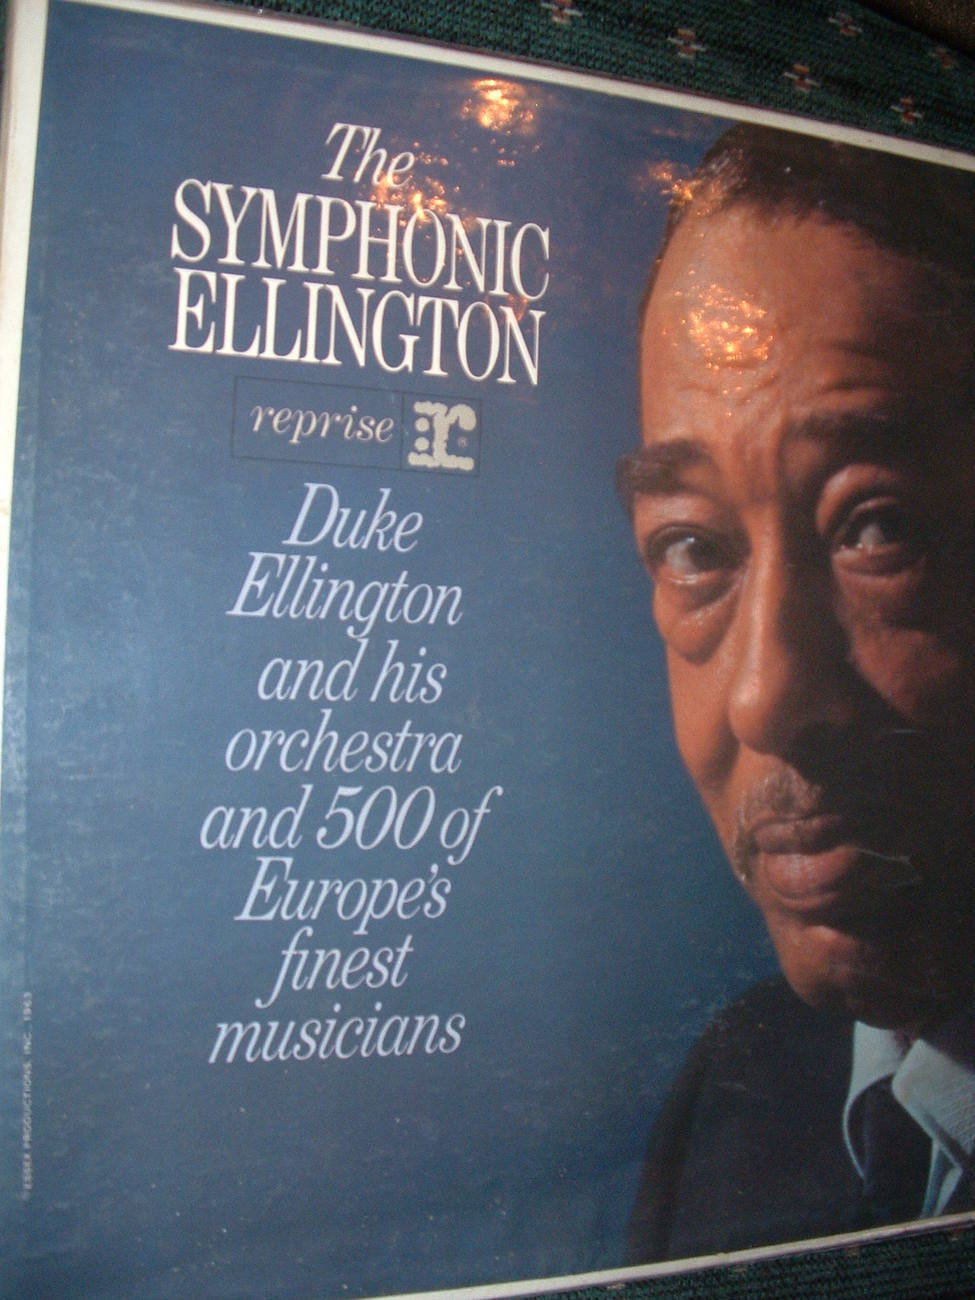 Primary image for 1963 DUKE ELLINGTON / SYMPHONIC ELLINGTON LP 33 RPM